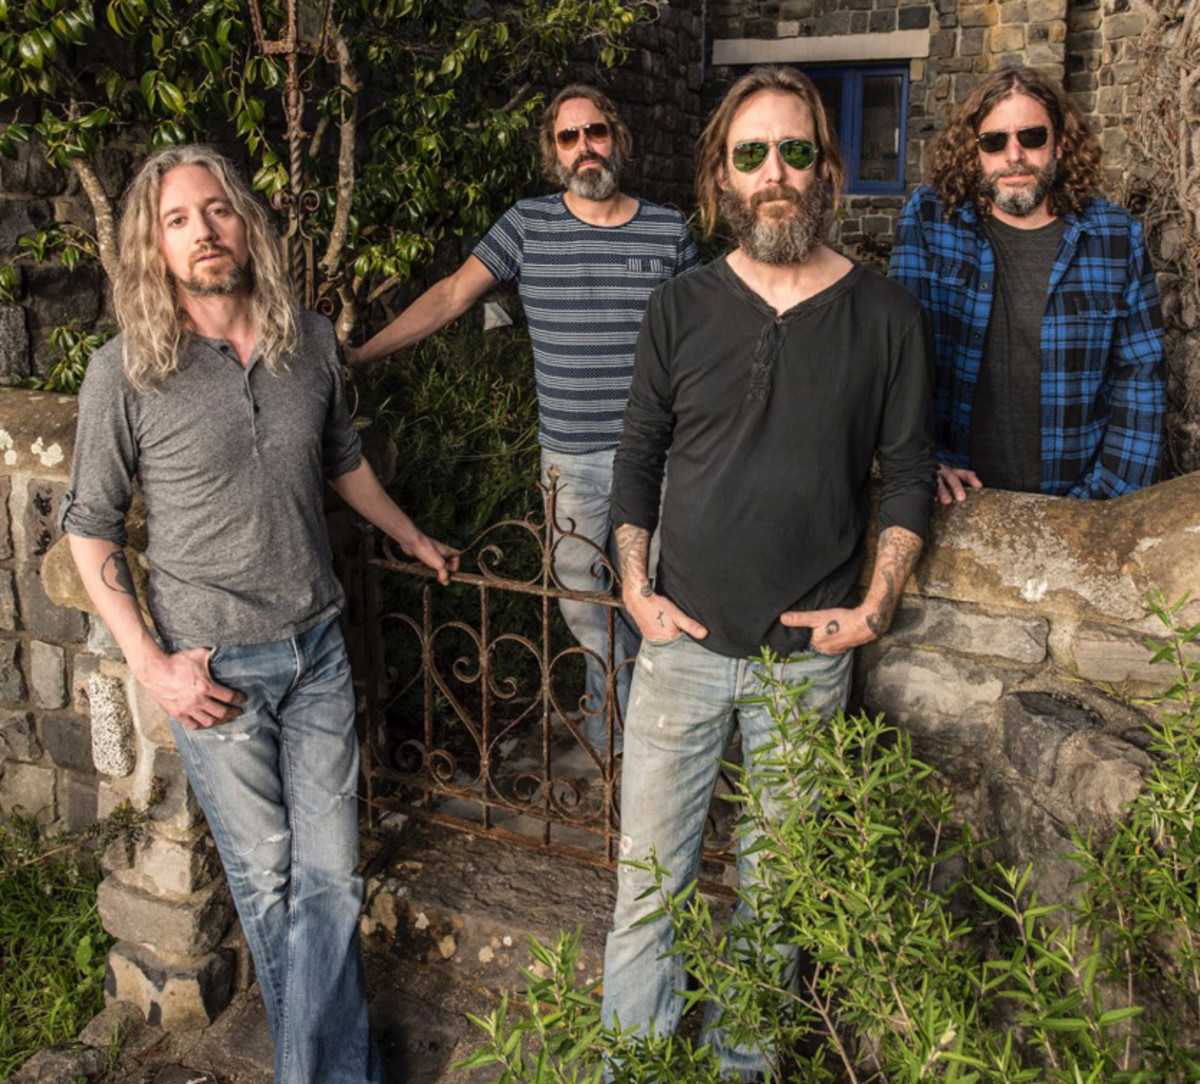 """Chris Robinson (middle) leads his Brotherhood (L-R: Adam MacDougall, Neal Casal and Tony Leone) into a vibrant new release, """"Anyway You Love, We Know How You Feel"""" (above right), and an ongoing tour through 2016. Photo by Jay Blakesberg."""